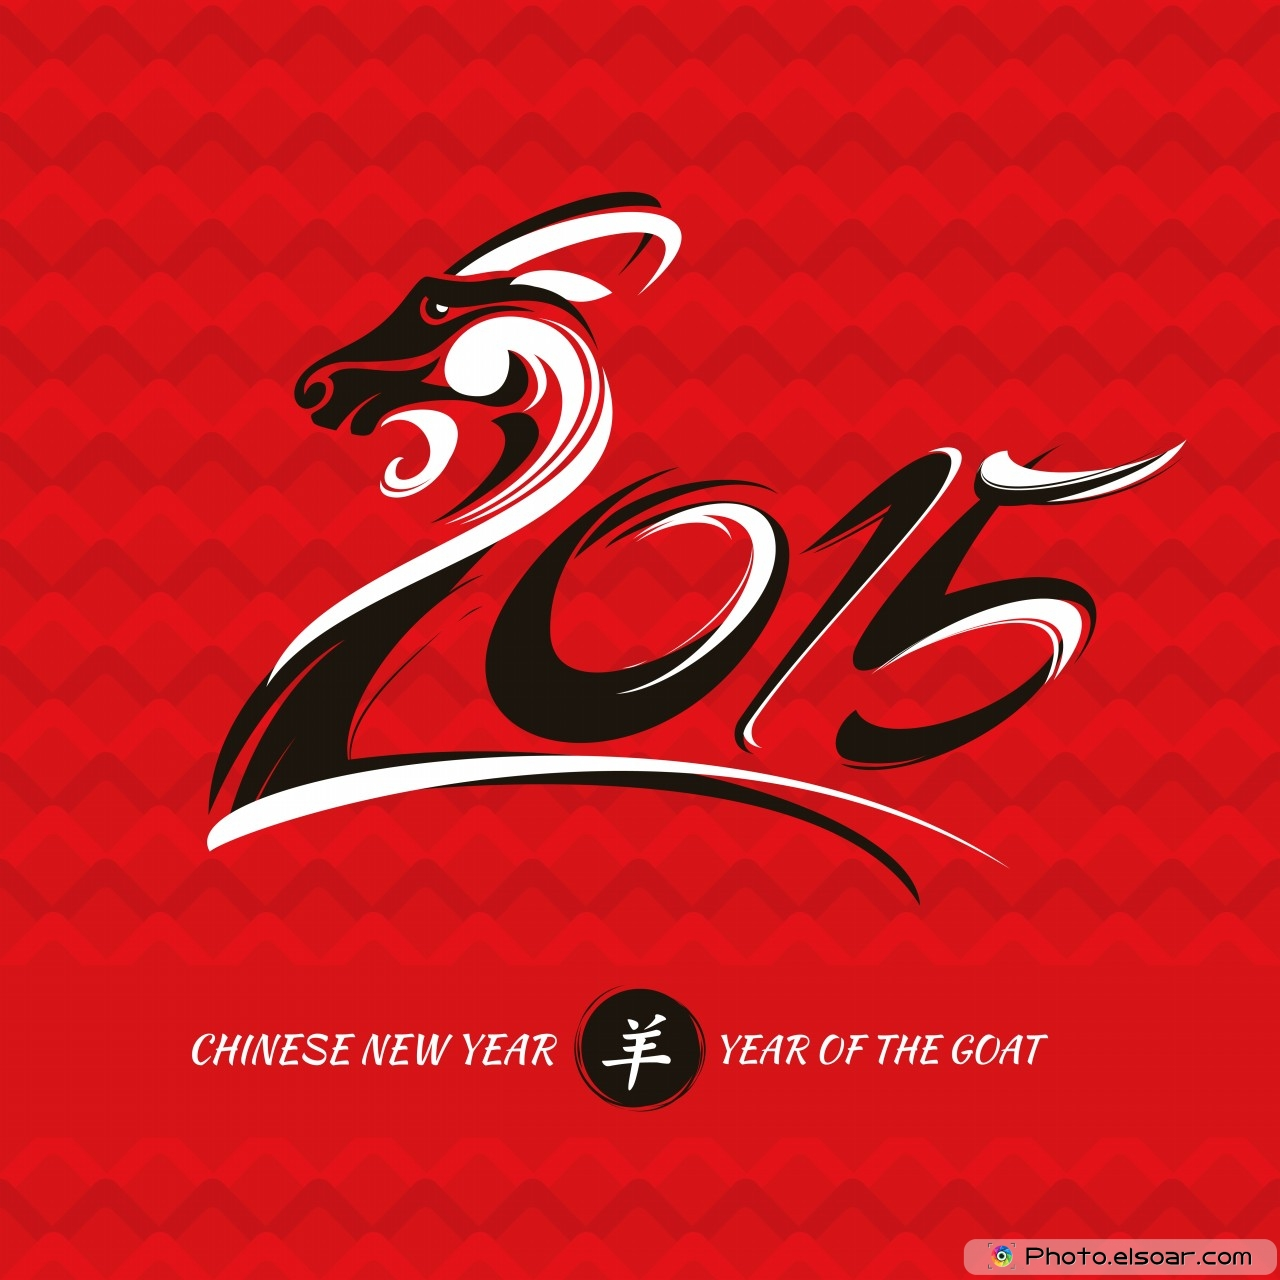 chinese new year 2015 greeting cards with goats • elsoar